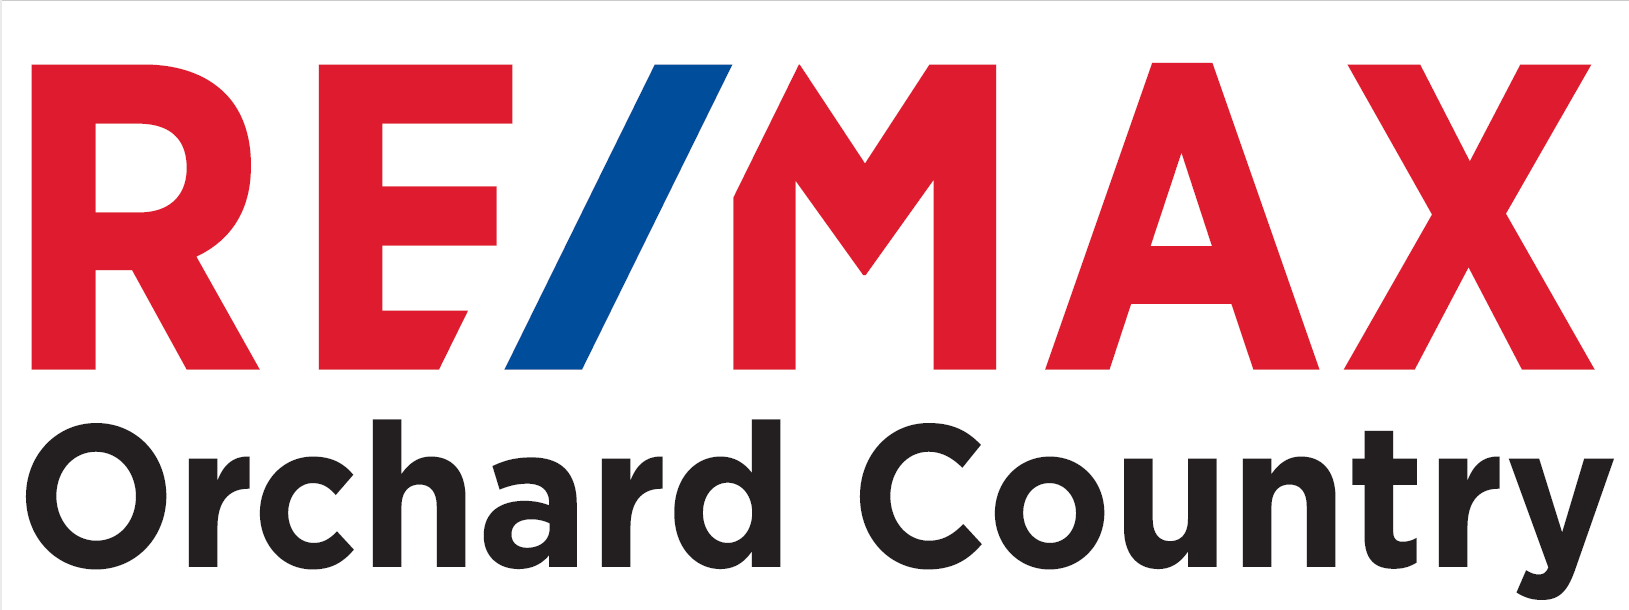 Top 3 Agent at RE/MAX Orchard Country 2019 image